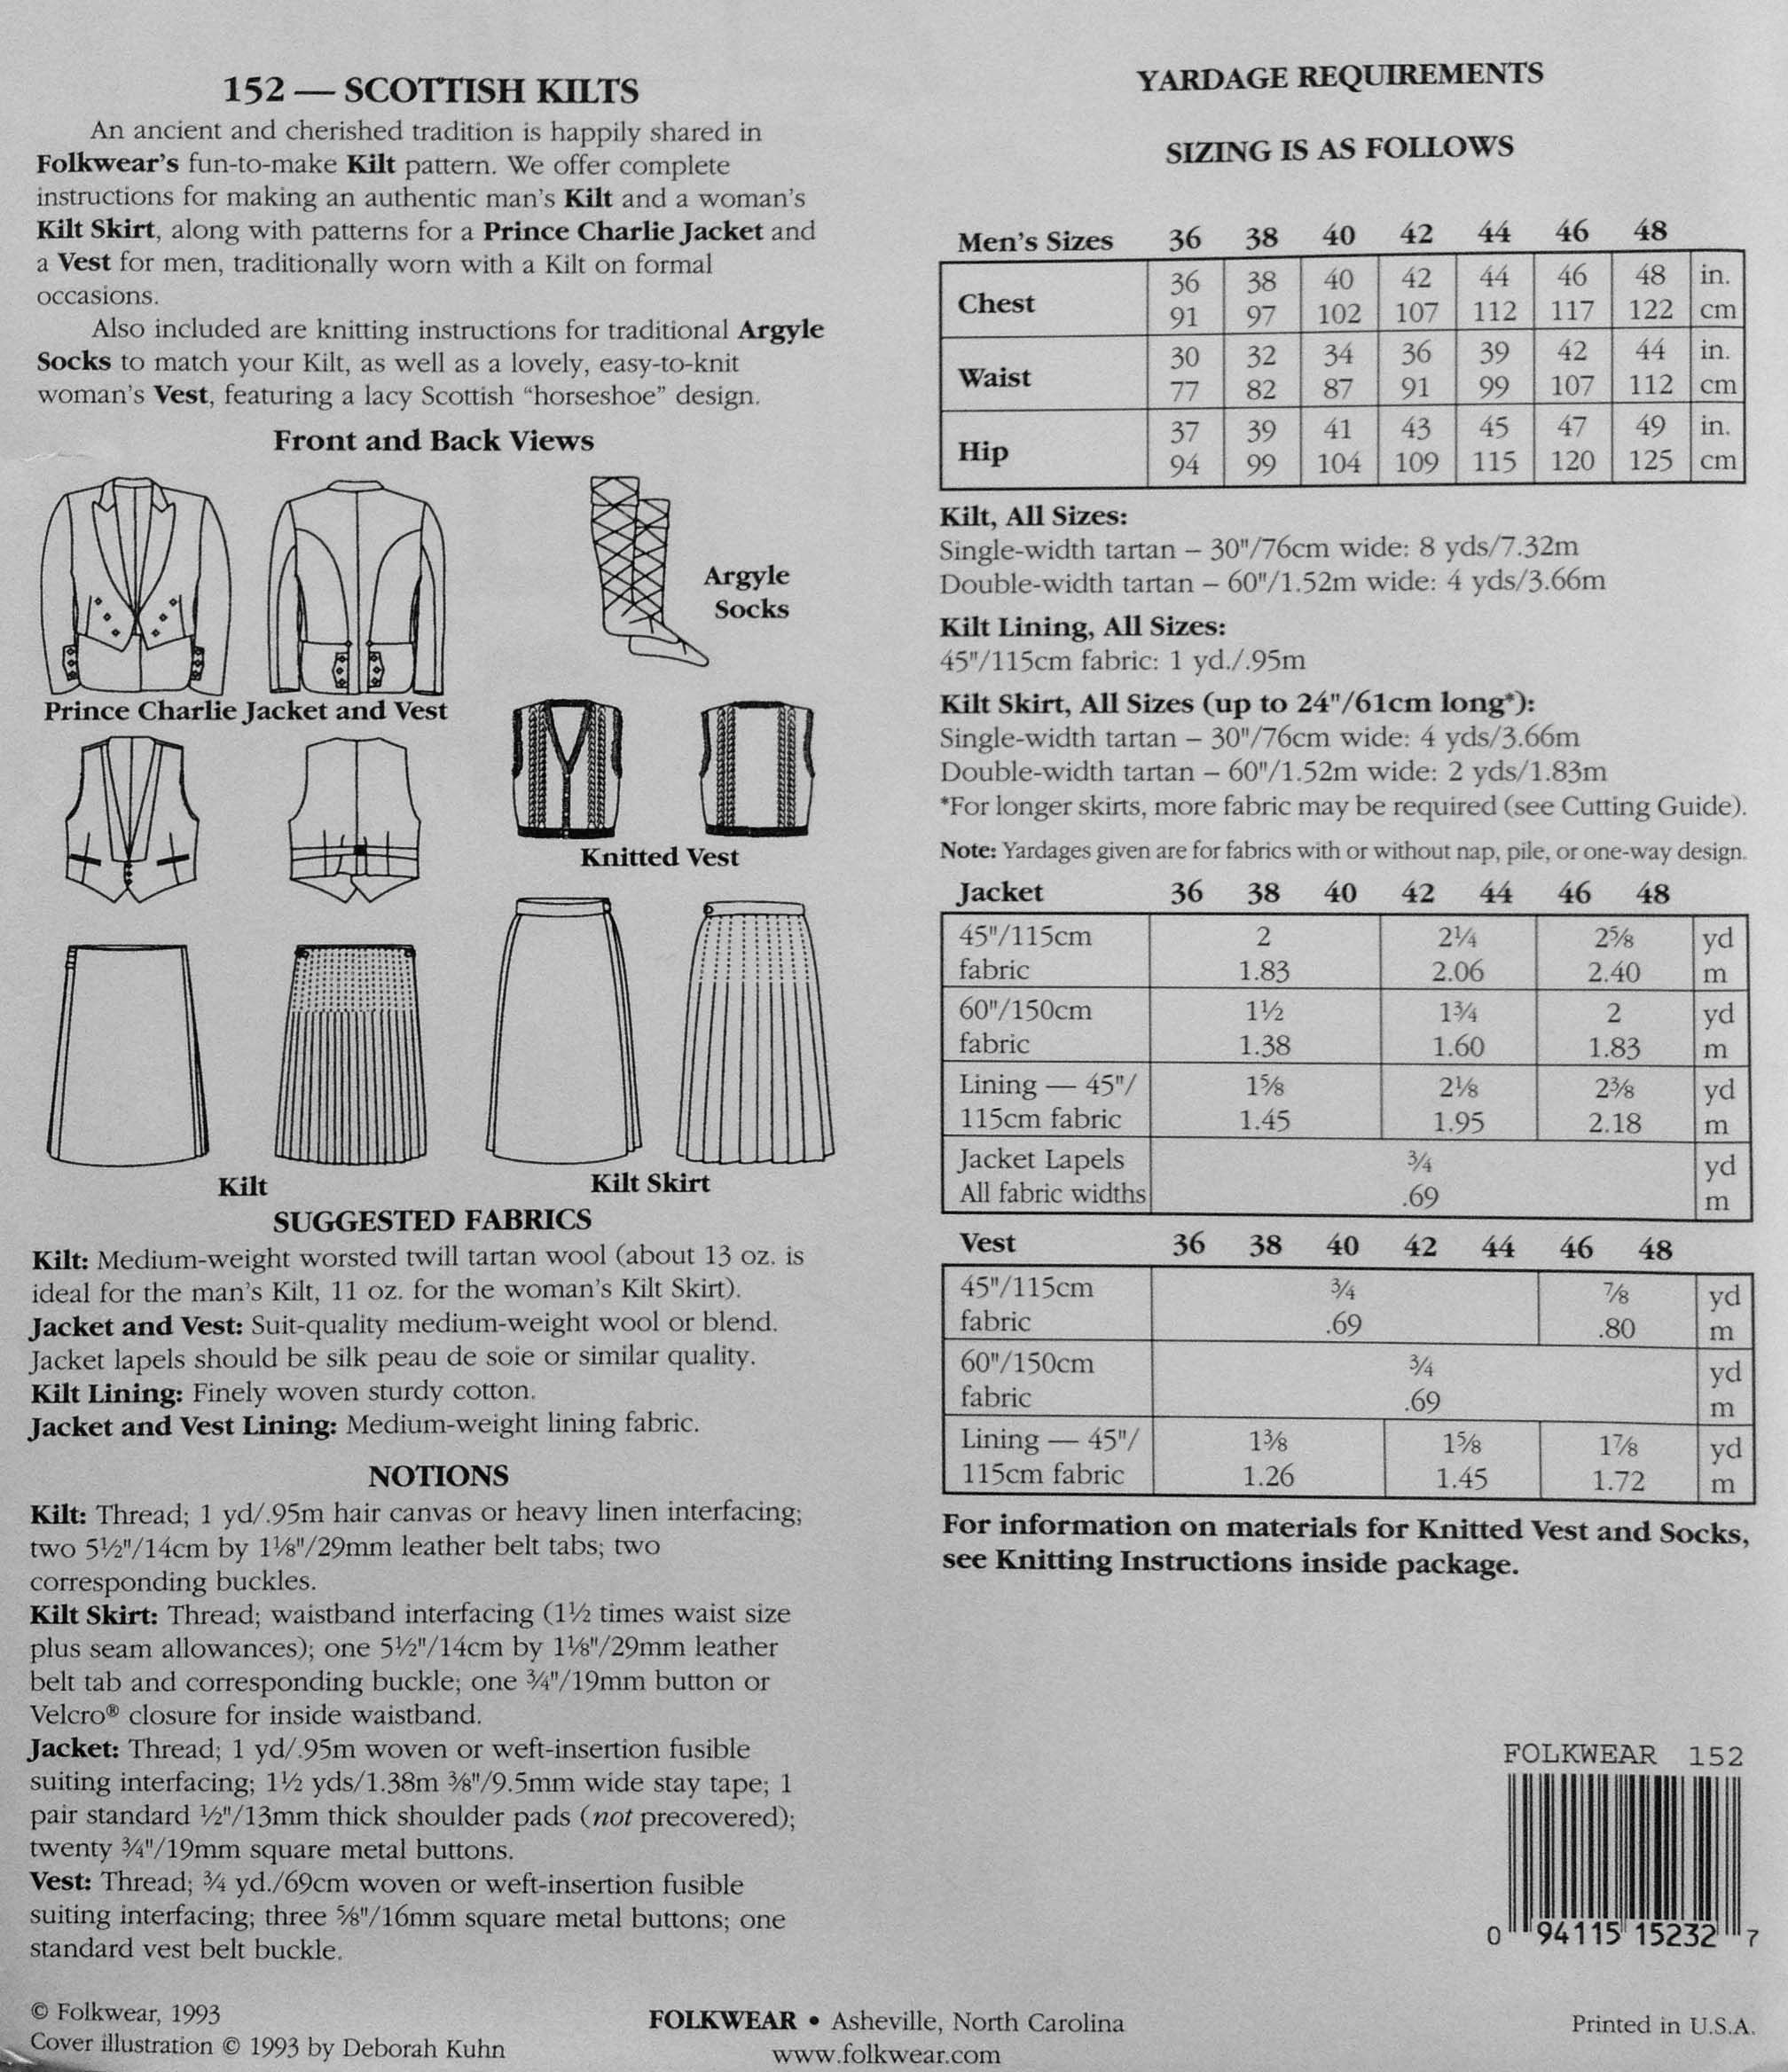 Patterns for kilts browse patterns kilt stuff pinterest patterns for kilts browse patterns jeuxipadfo Image collections